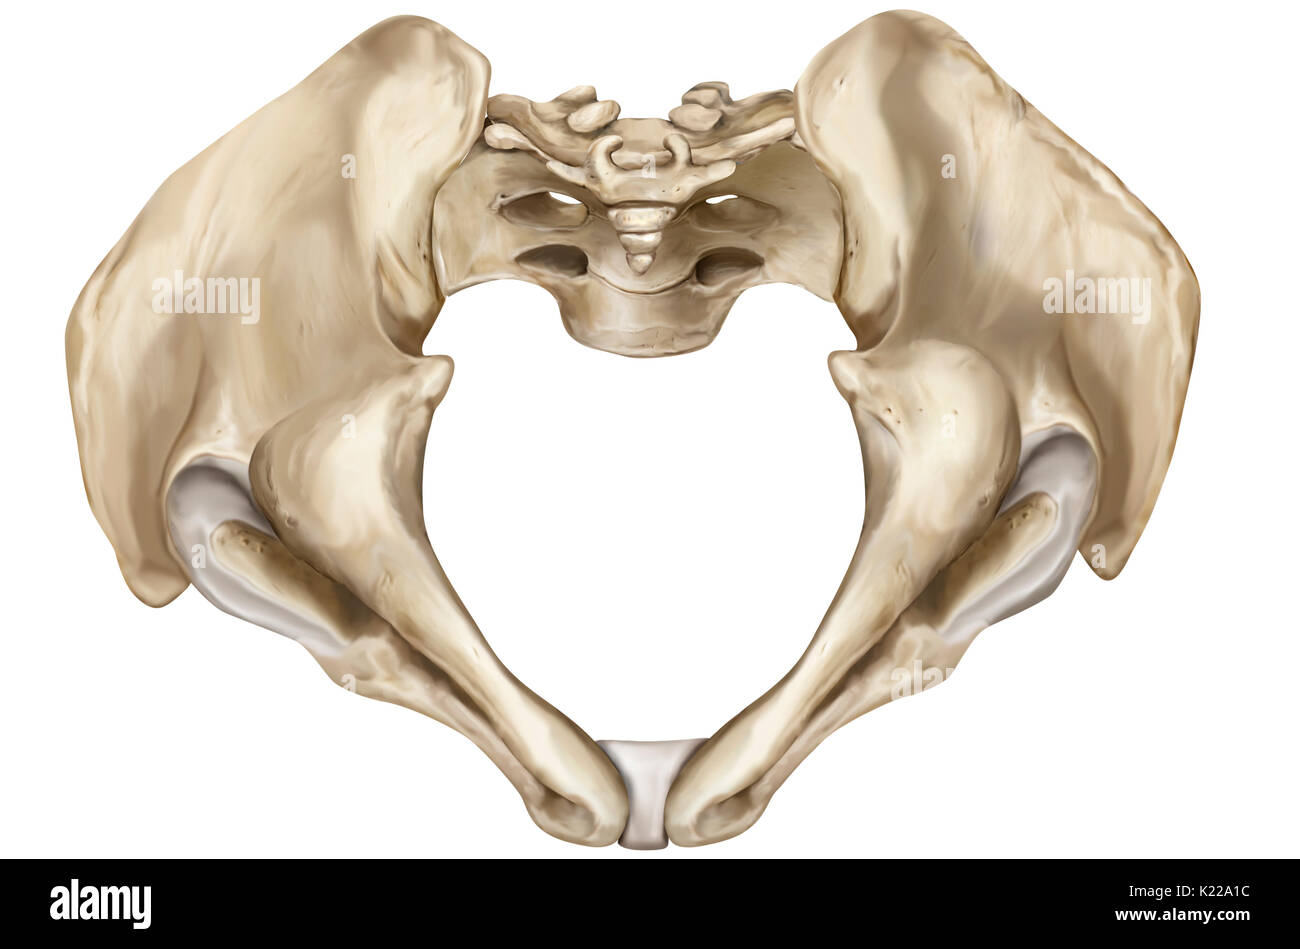 Bony girdle consisting of the sacrum, coccyx and two iliac bones, joining the bones of the lower limbs to the axial skeleton. - Stock Image